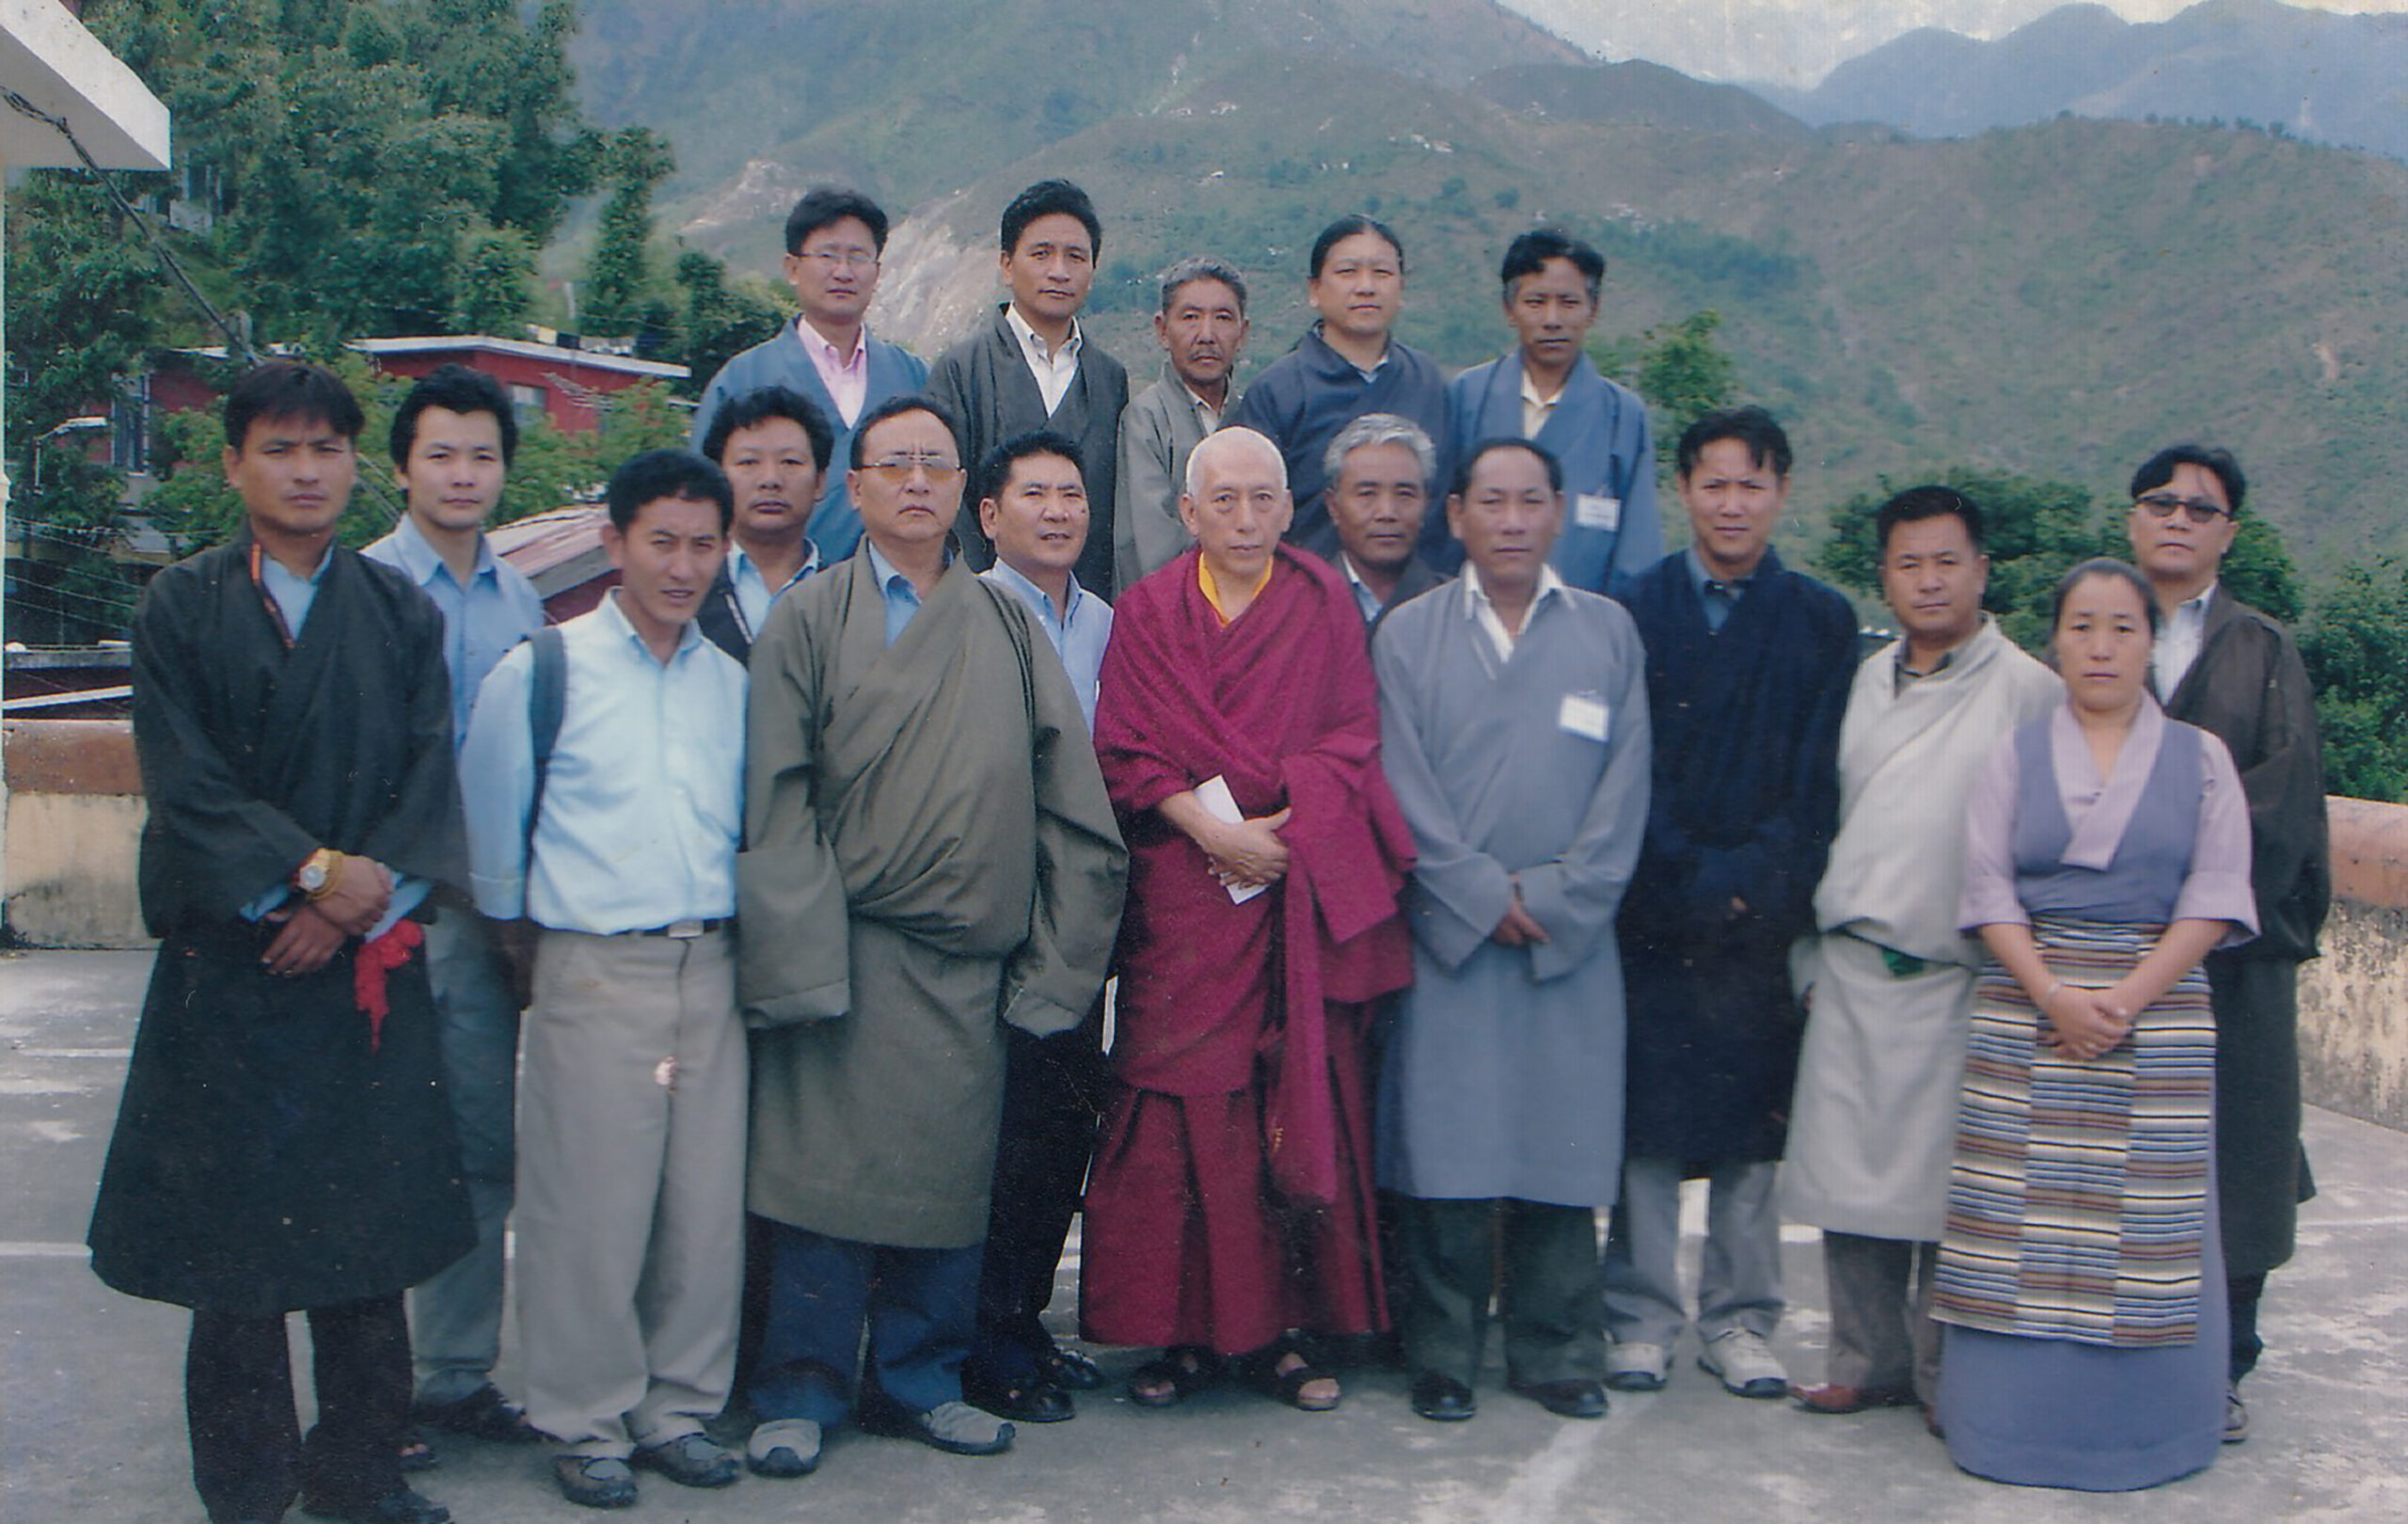 A group photo with Kasur Samdhong Rinpoche during the 1st meeting of Federation of Tibetan Cooperatives, Dharamshala, 2004.